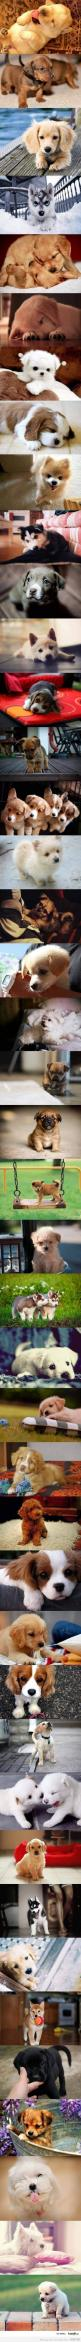 Puppies!! They are so cute!: Doggie, Cuteness Overload, Cute Puppies, Animals, Pet, Puppys, Puppies 3